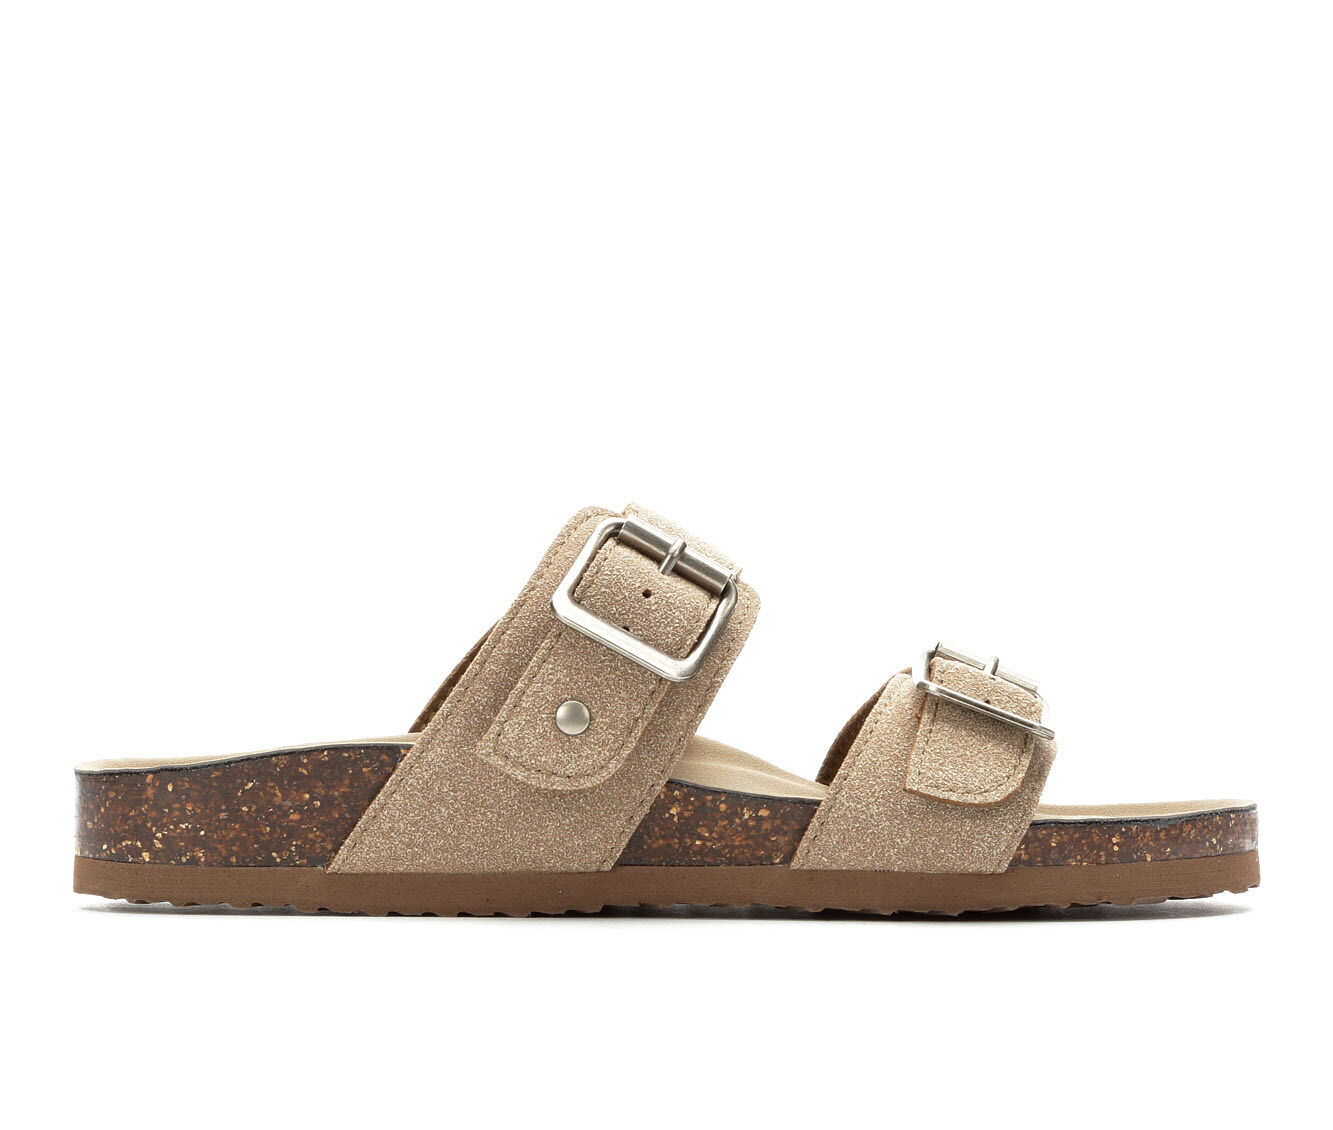 Women's Madden Girl Brando Footbed Sandals Taupe Suede